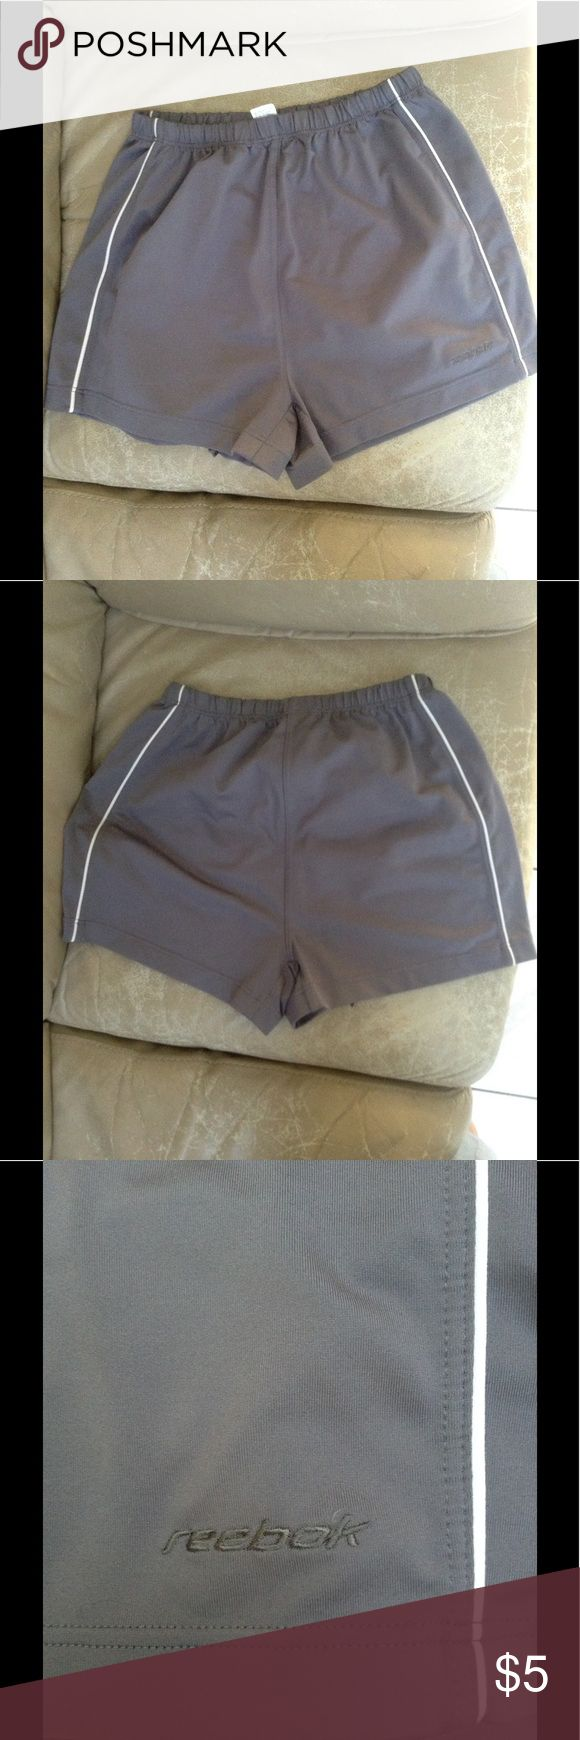 Reebok women's running shorts Reebok Hydromove women's running shorts in gray with white piping, no pockets, size M. Lightly worn,no rips, holes or tears. Reebok Shorts